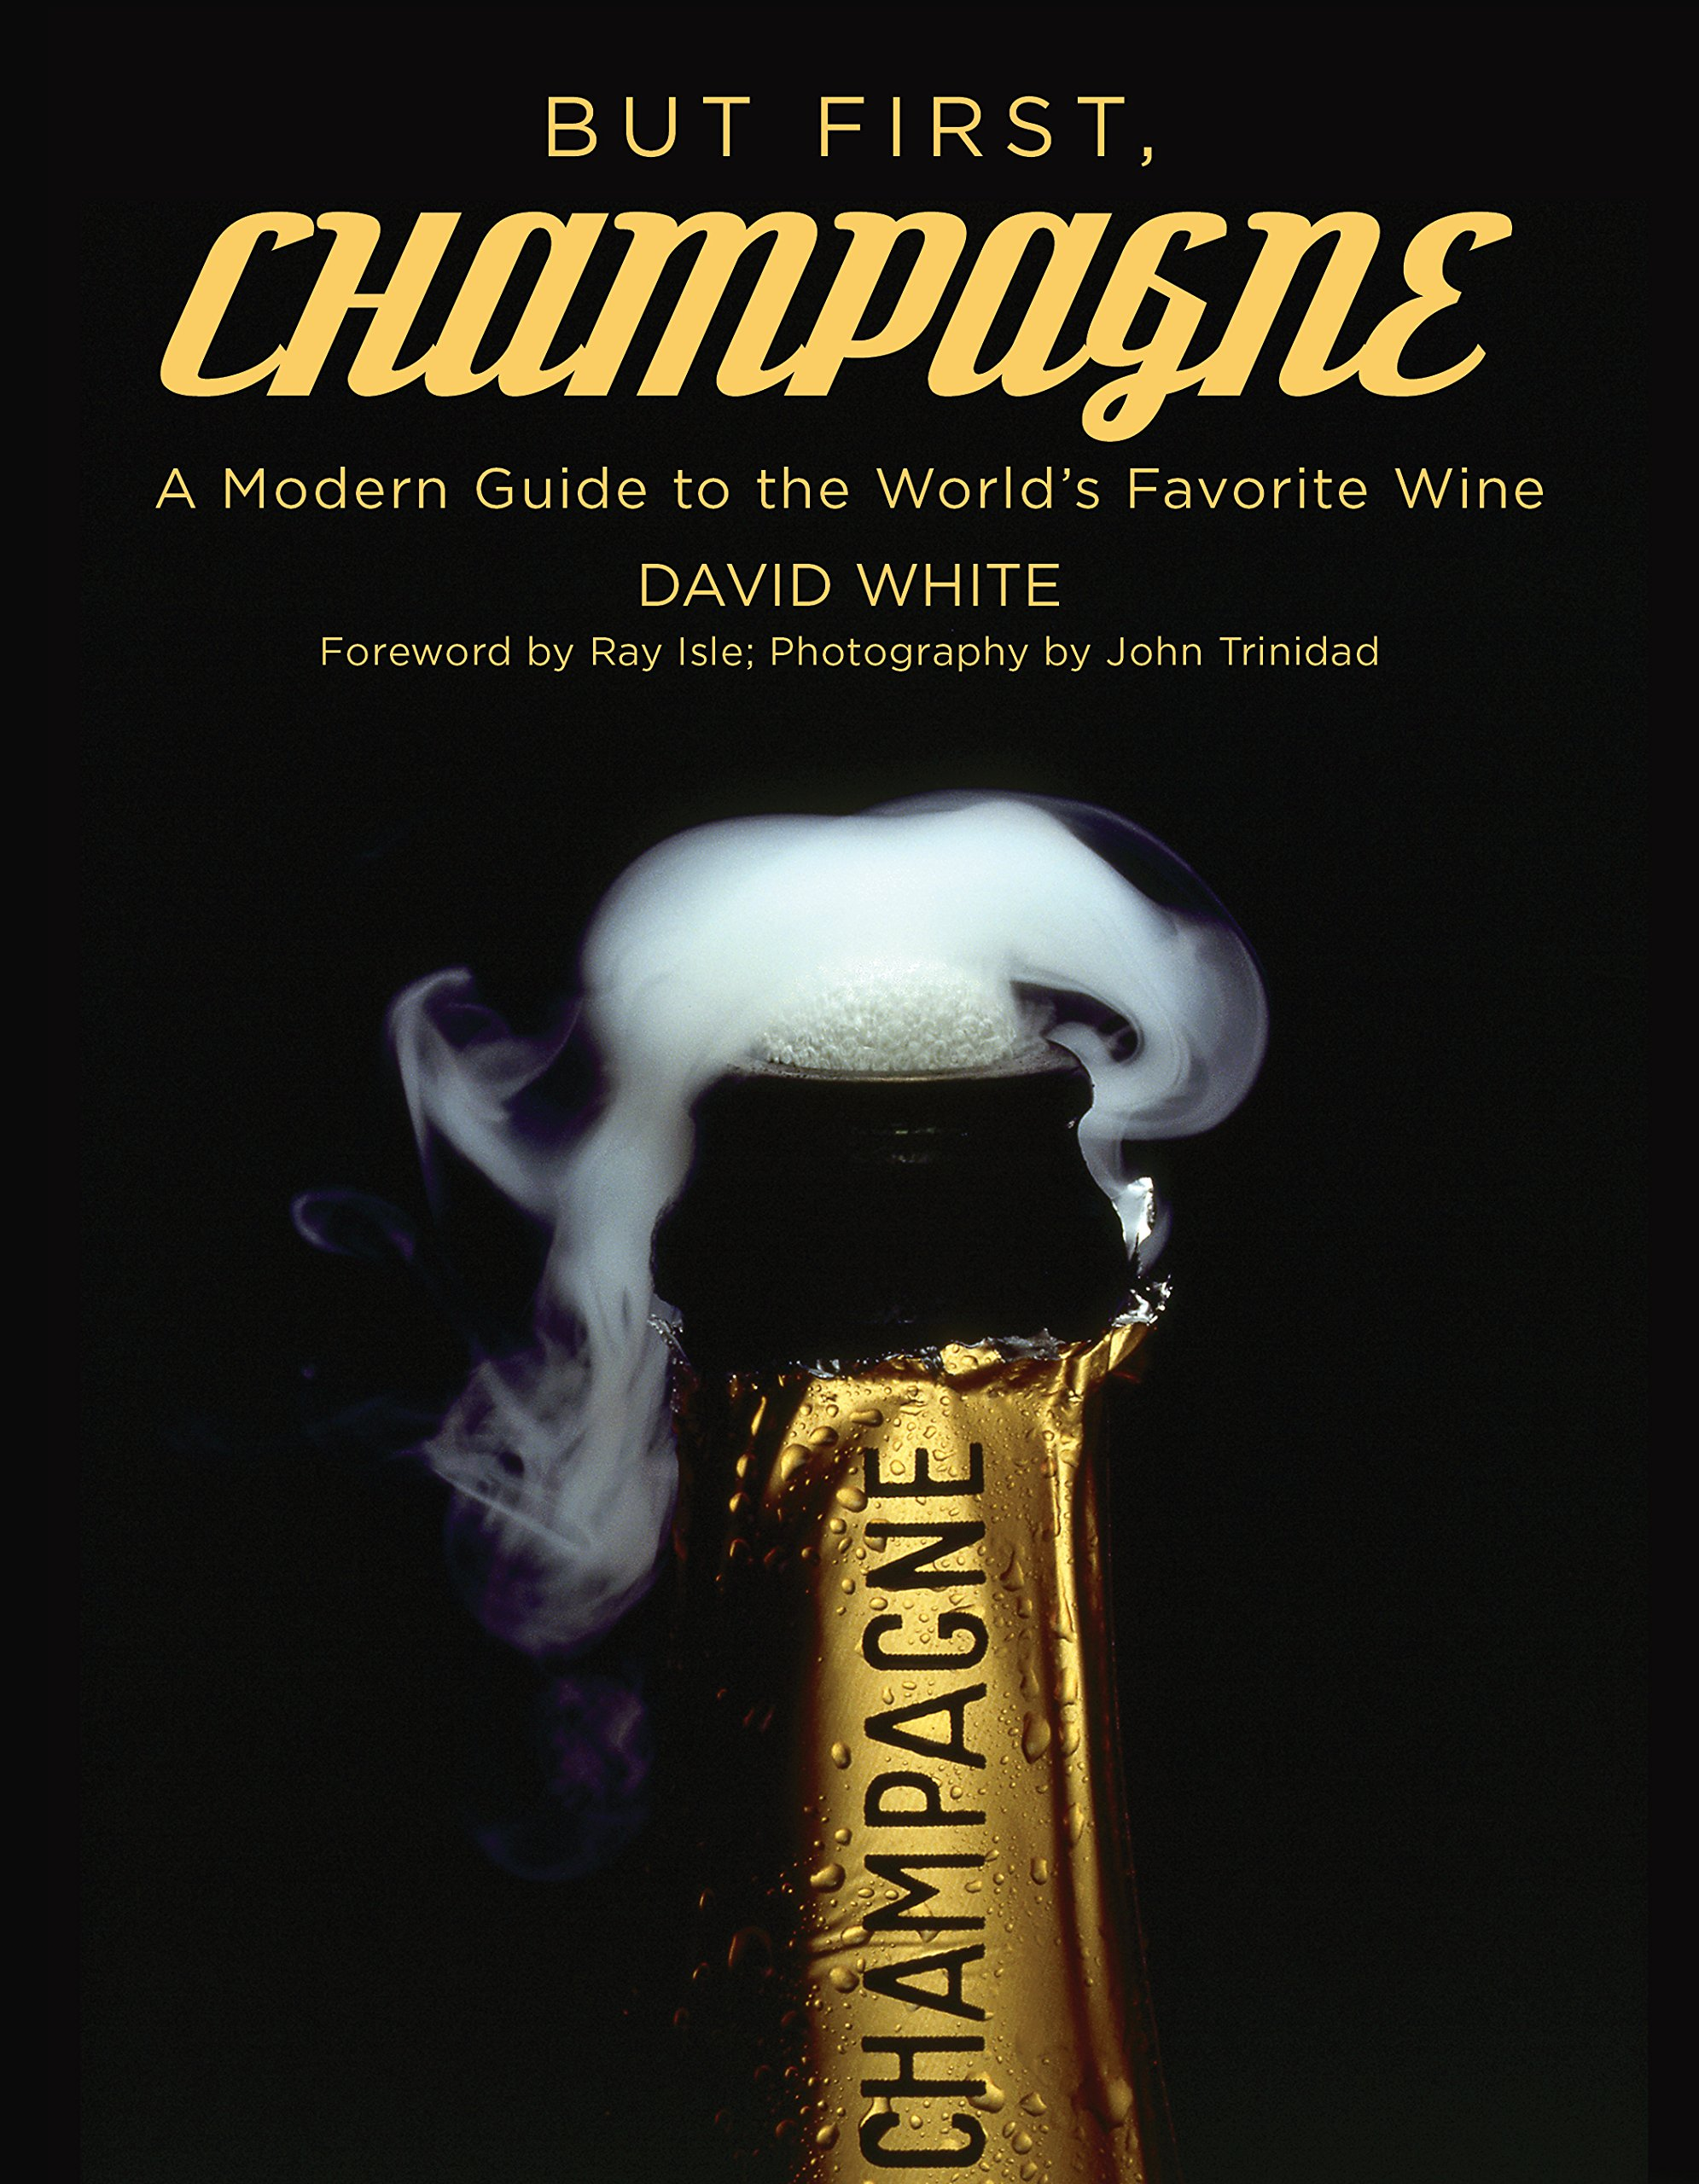 Read Online But First, Champagne: A Modern Guide to the World's Favorite Wine PDF